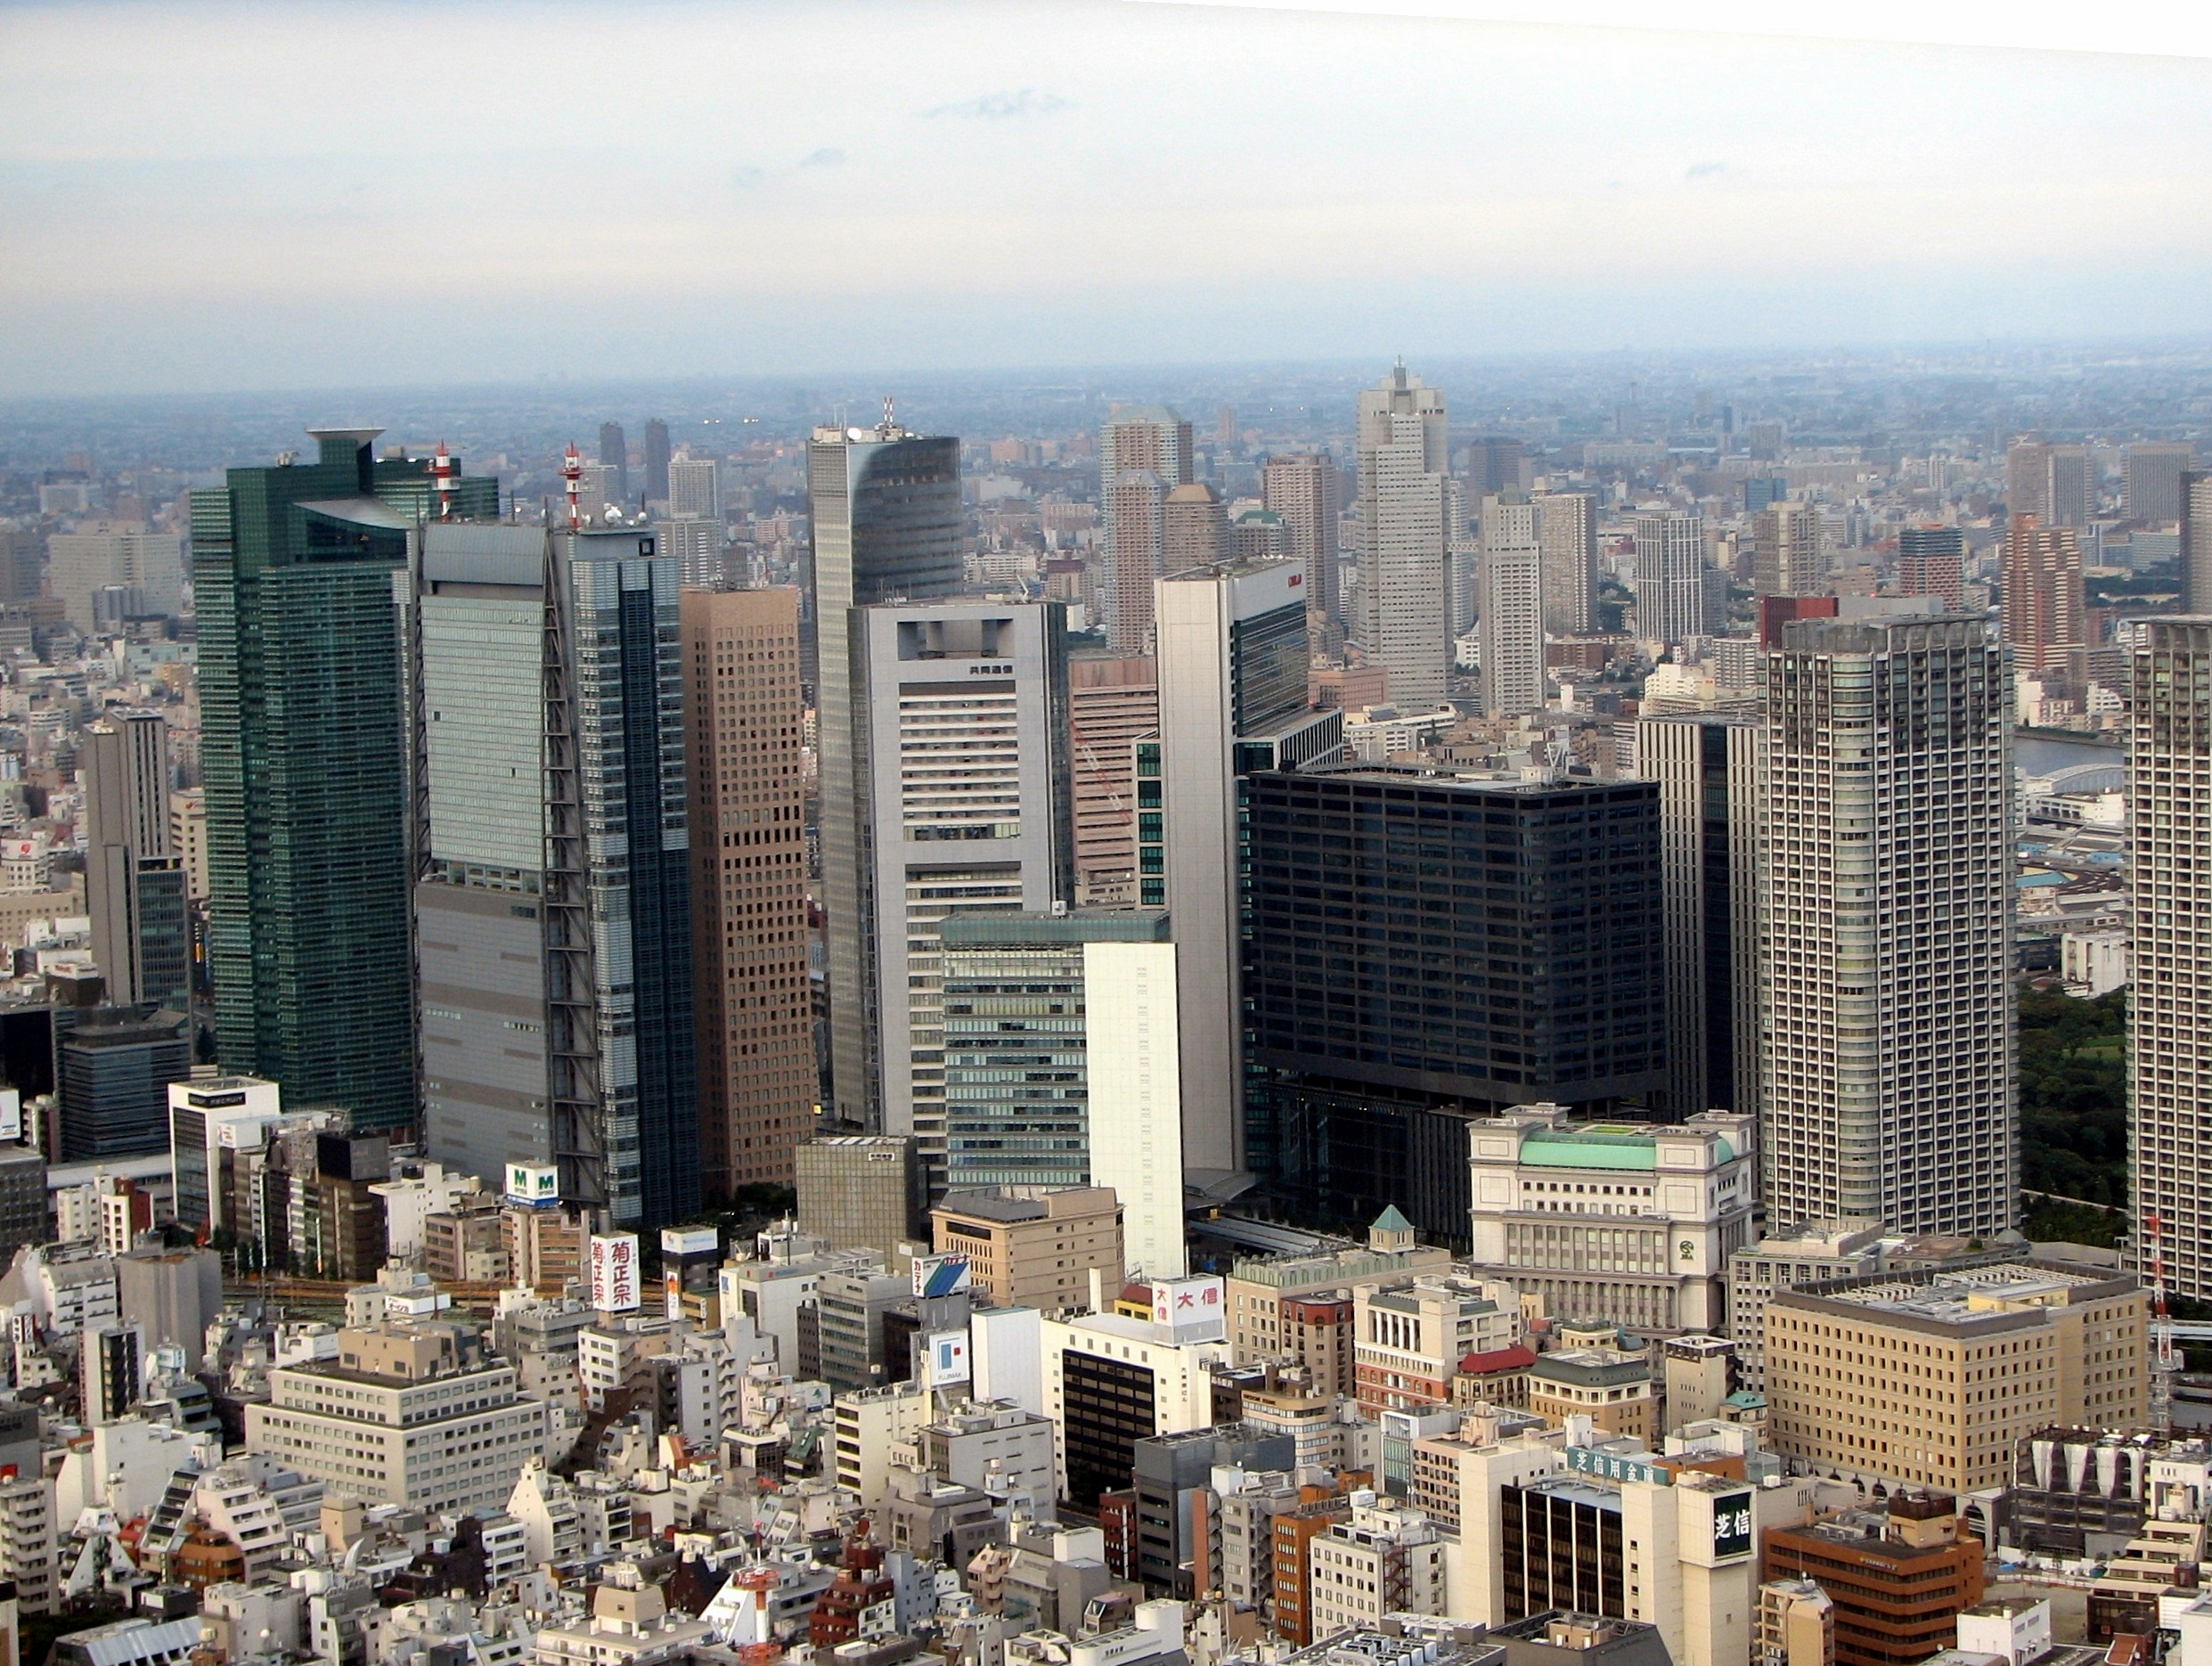 Shiodome_Area_from_Tokyo_Tower.jpg